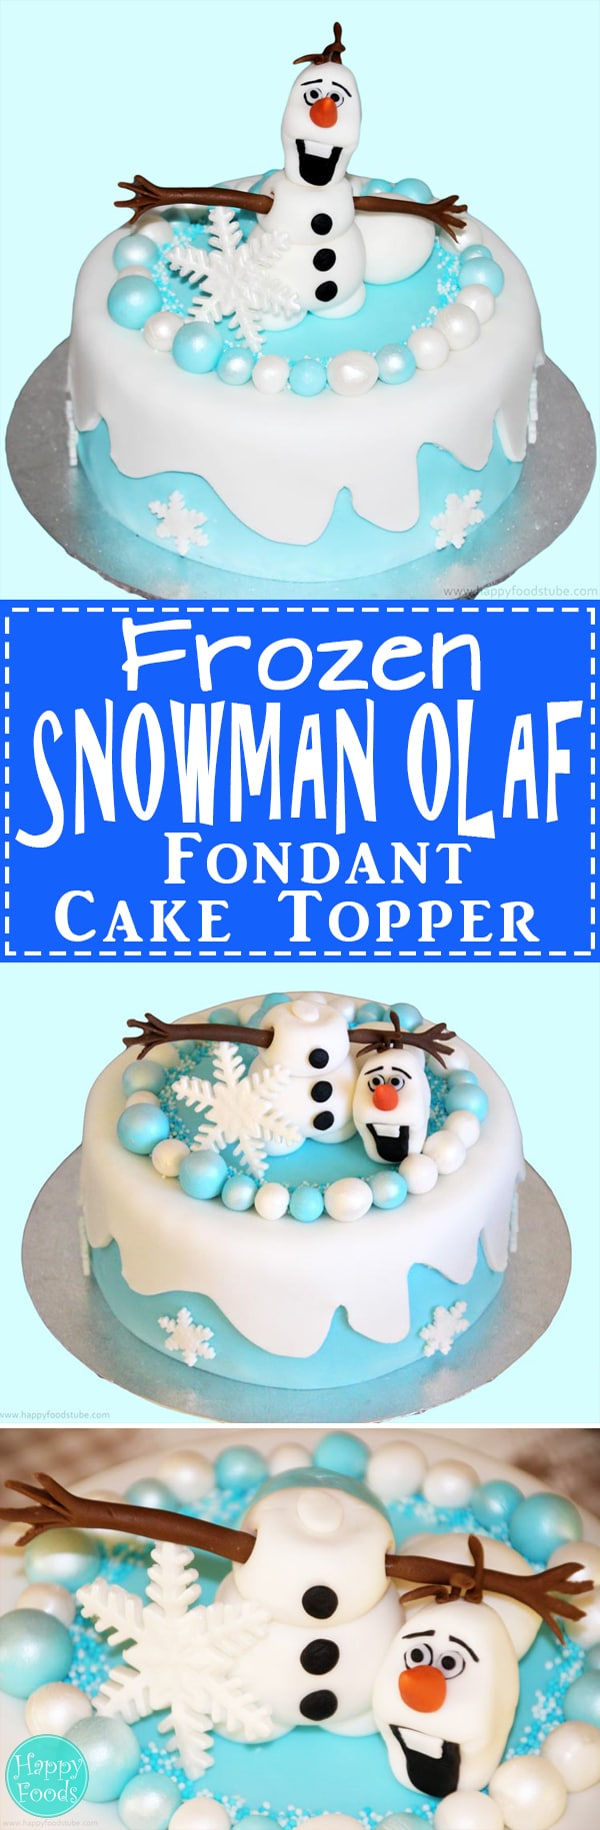 Frozen Snowman Olaf Fondant Icing Cake Topper Decorating Tutorial Learn How To